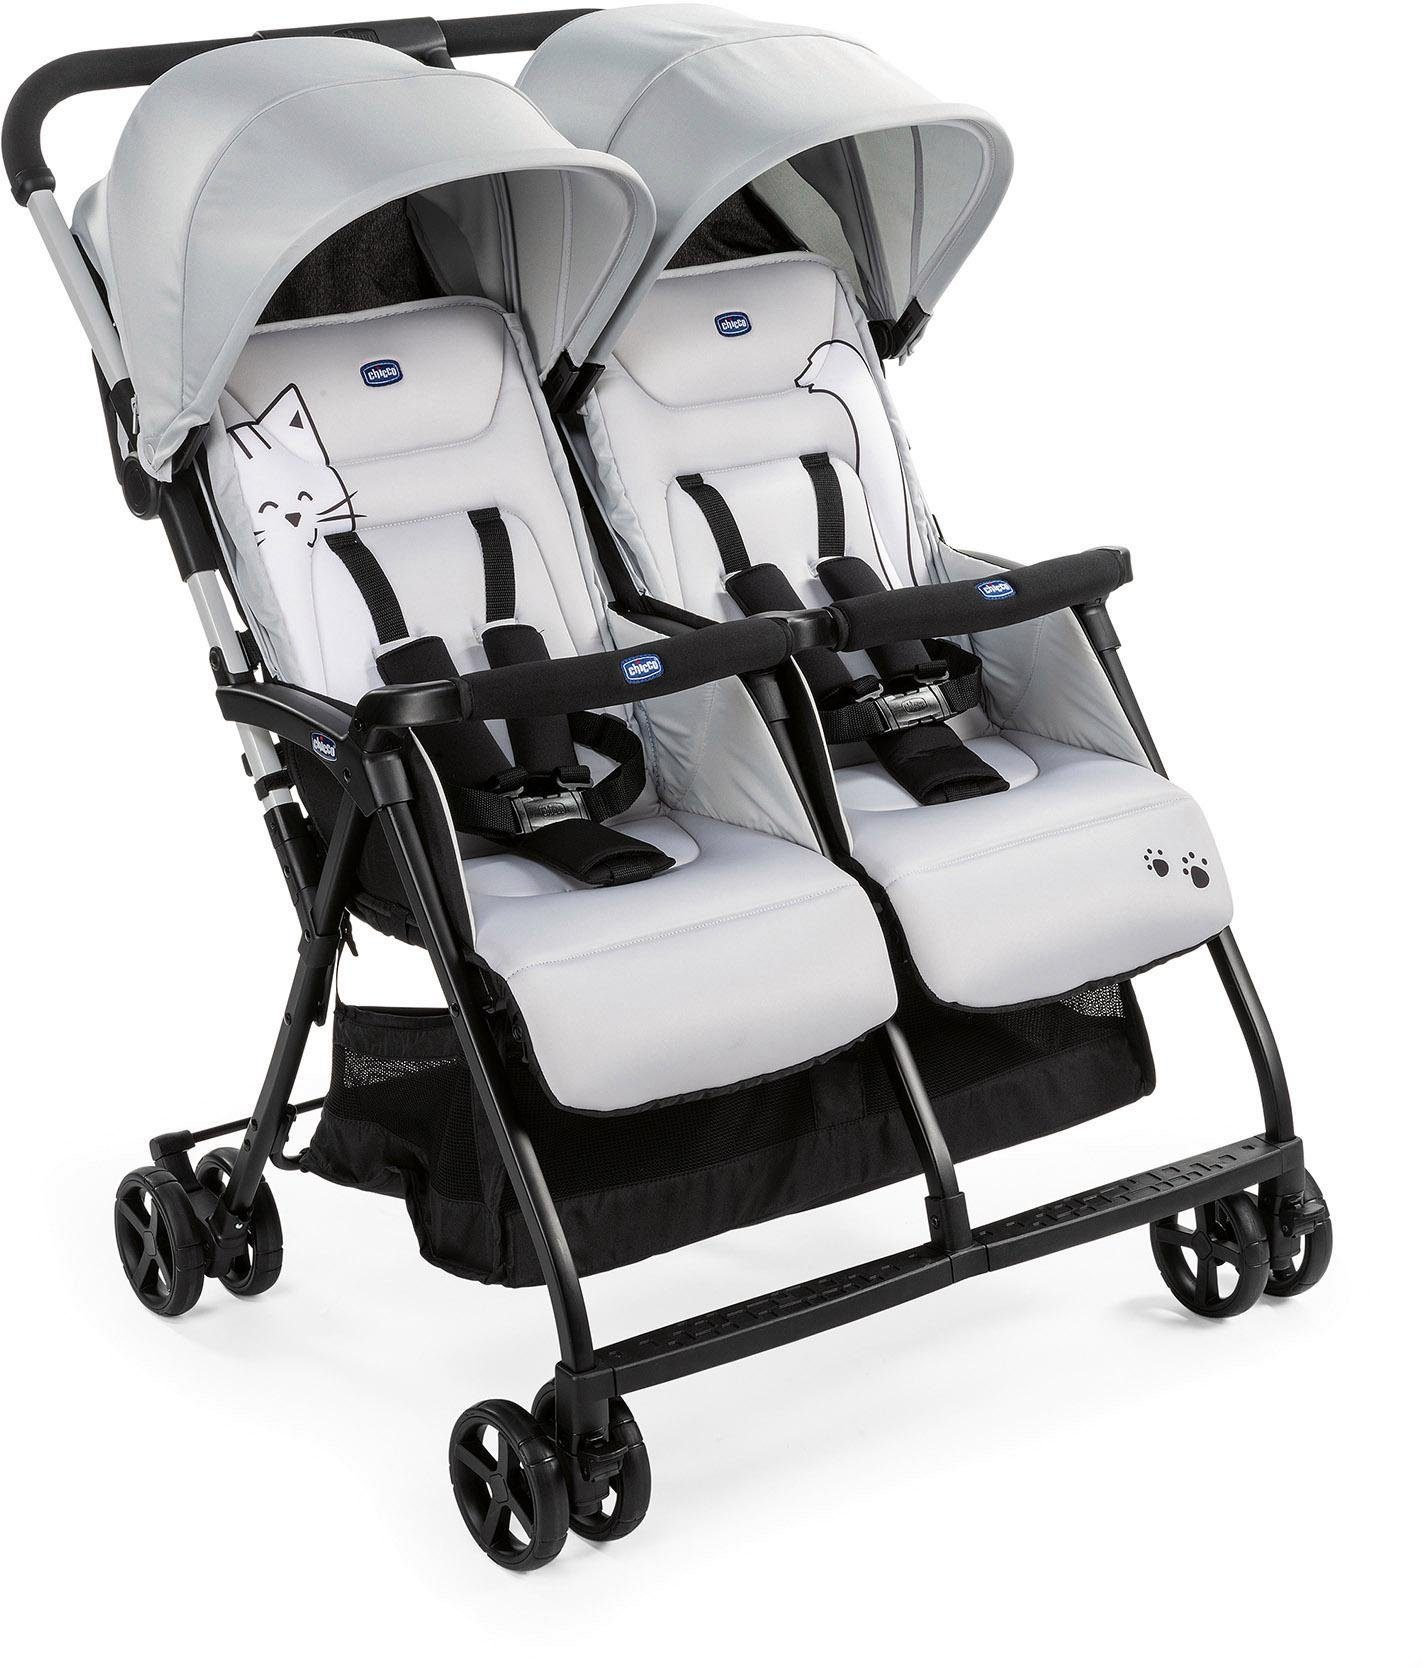 Chicco Zwillingsbuggy OHlalà Twin, Silver Cat, 15 kg, Zwillingskinderwagen; Kinderwagen für Zwillinge; Buggy Zwillingswagen silberfarben Kinder Zwillingsbuggys Buggys Buggies